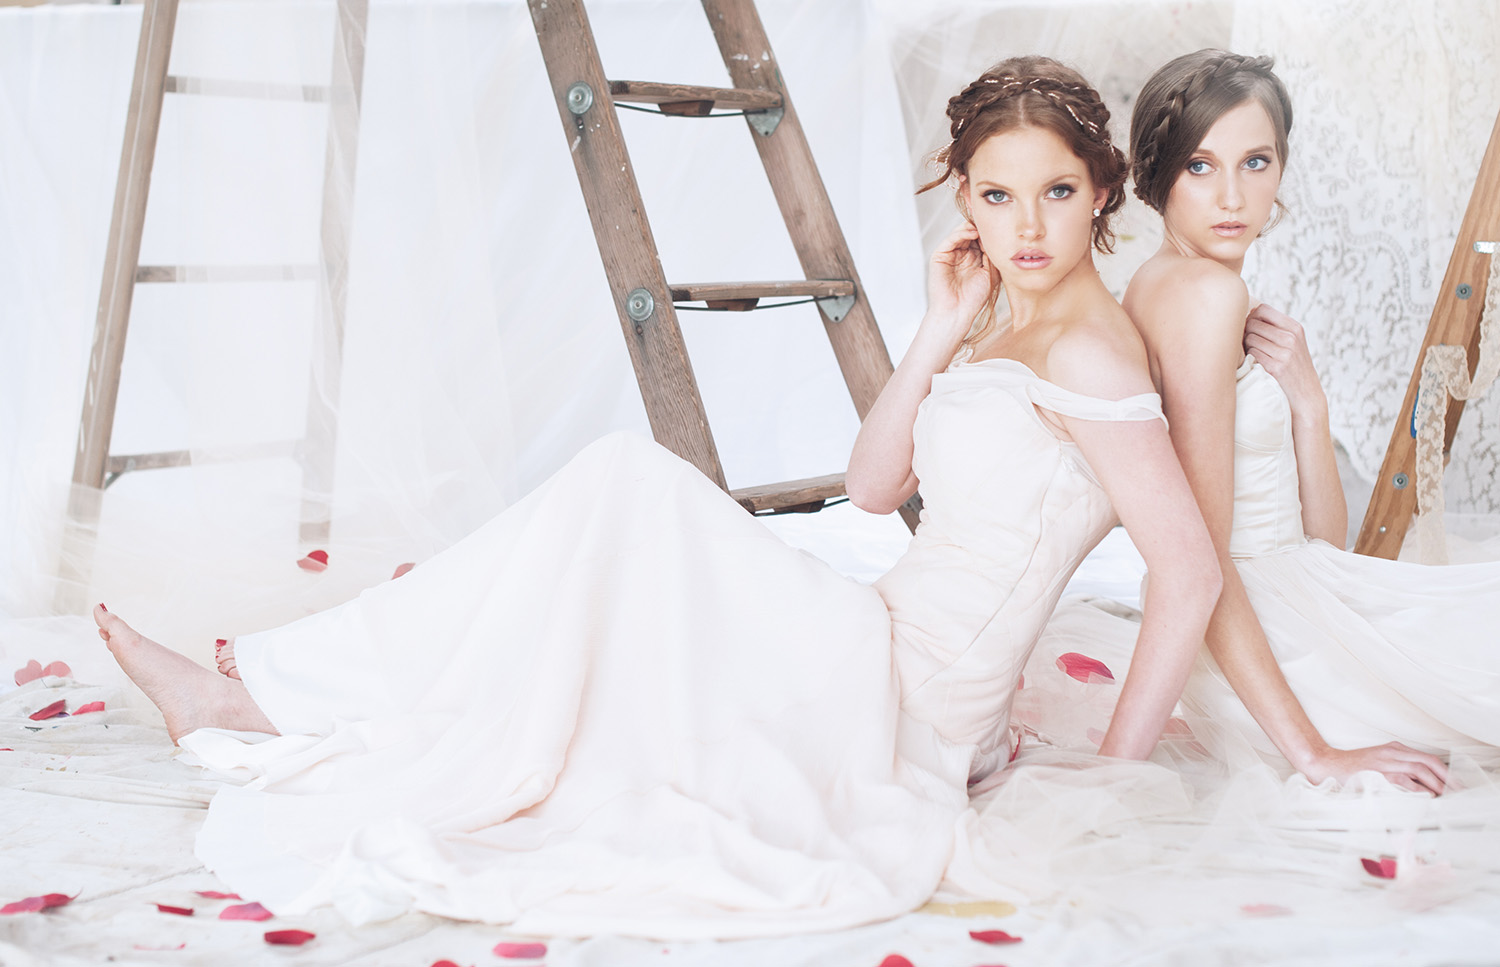 8-bridal-fashion-editorial-christa-taylor-photography.jpg